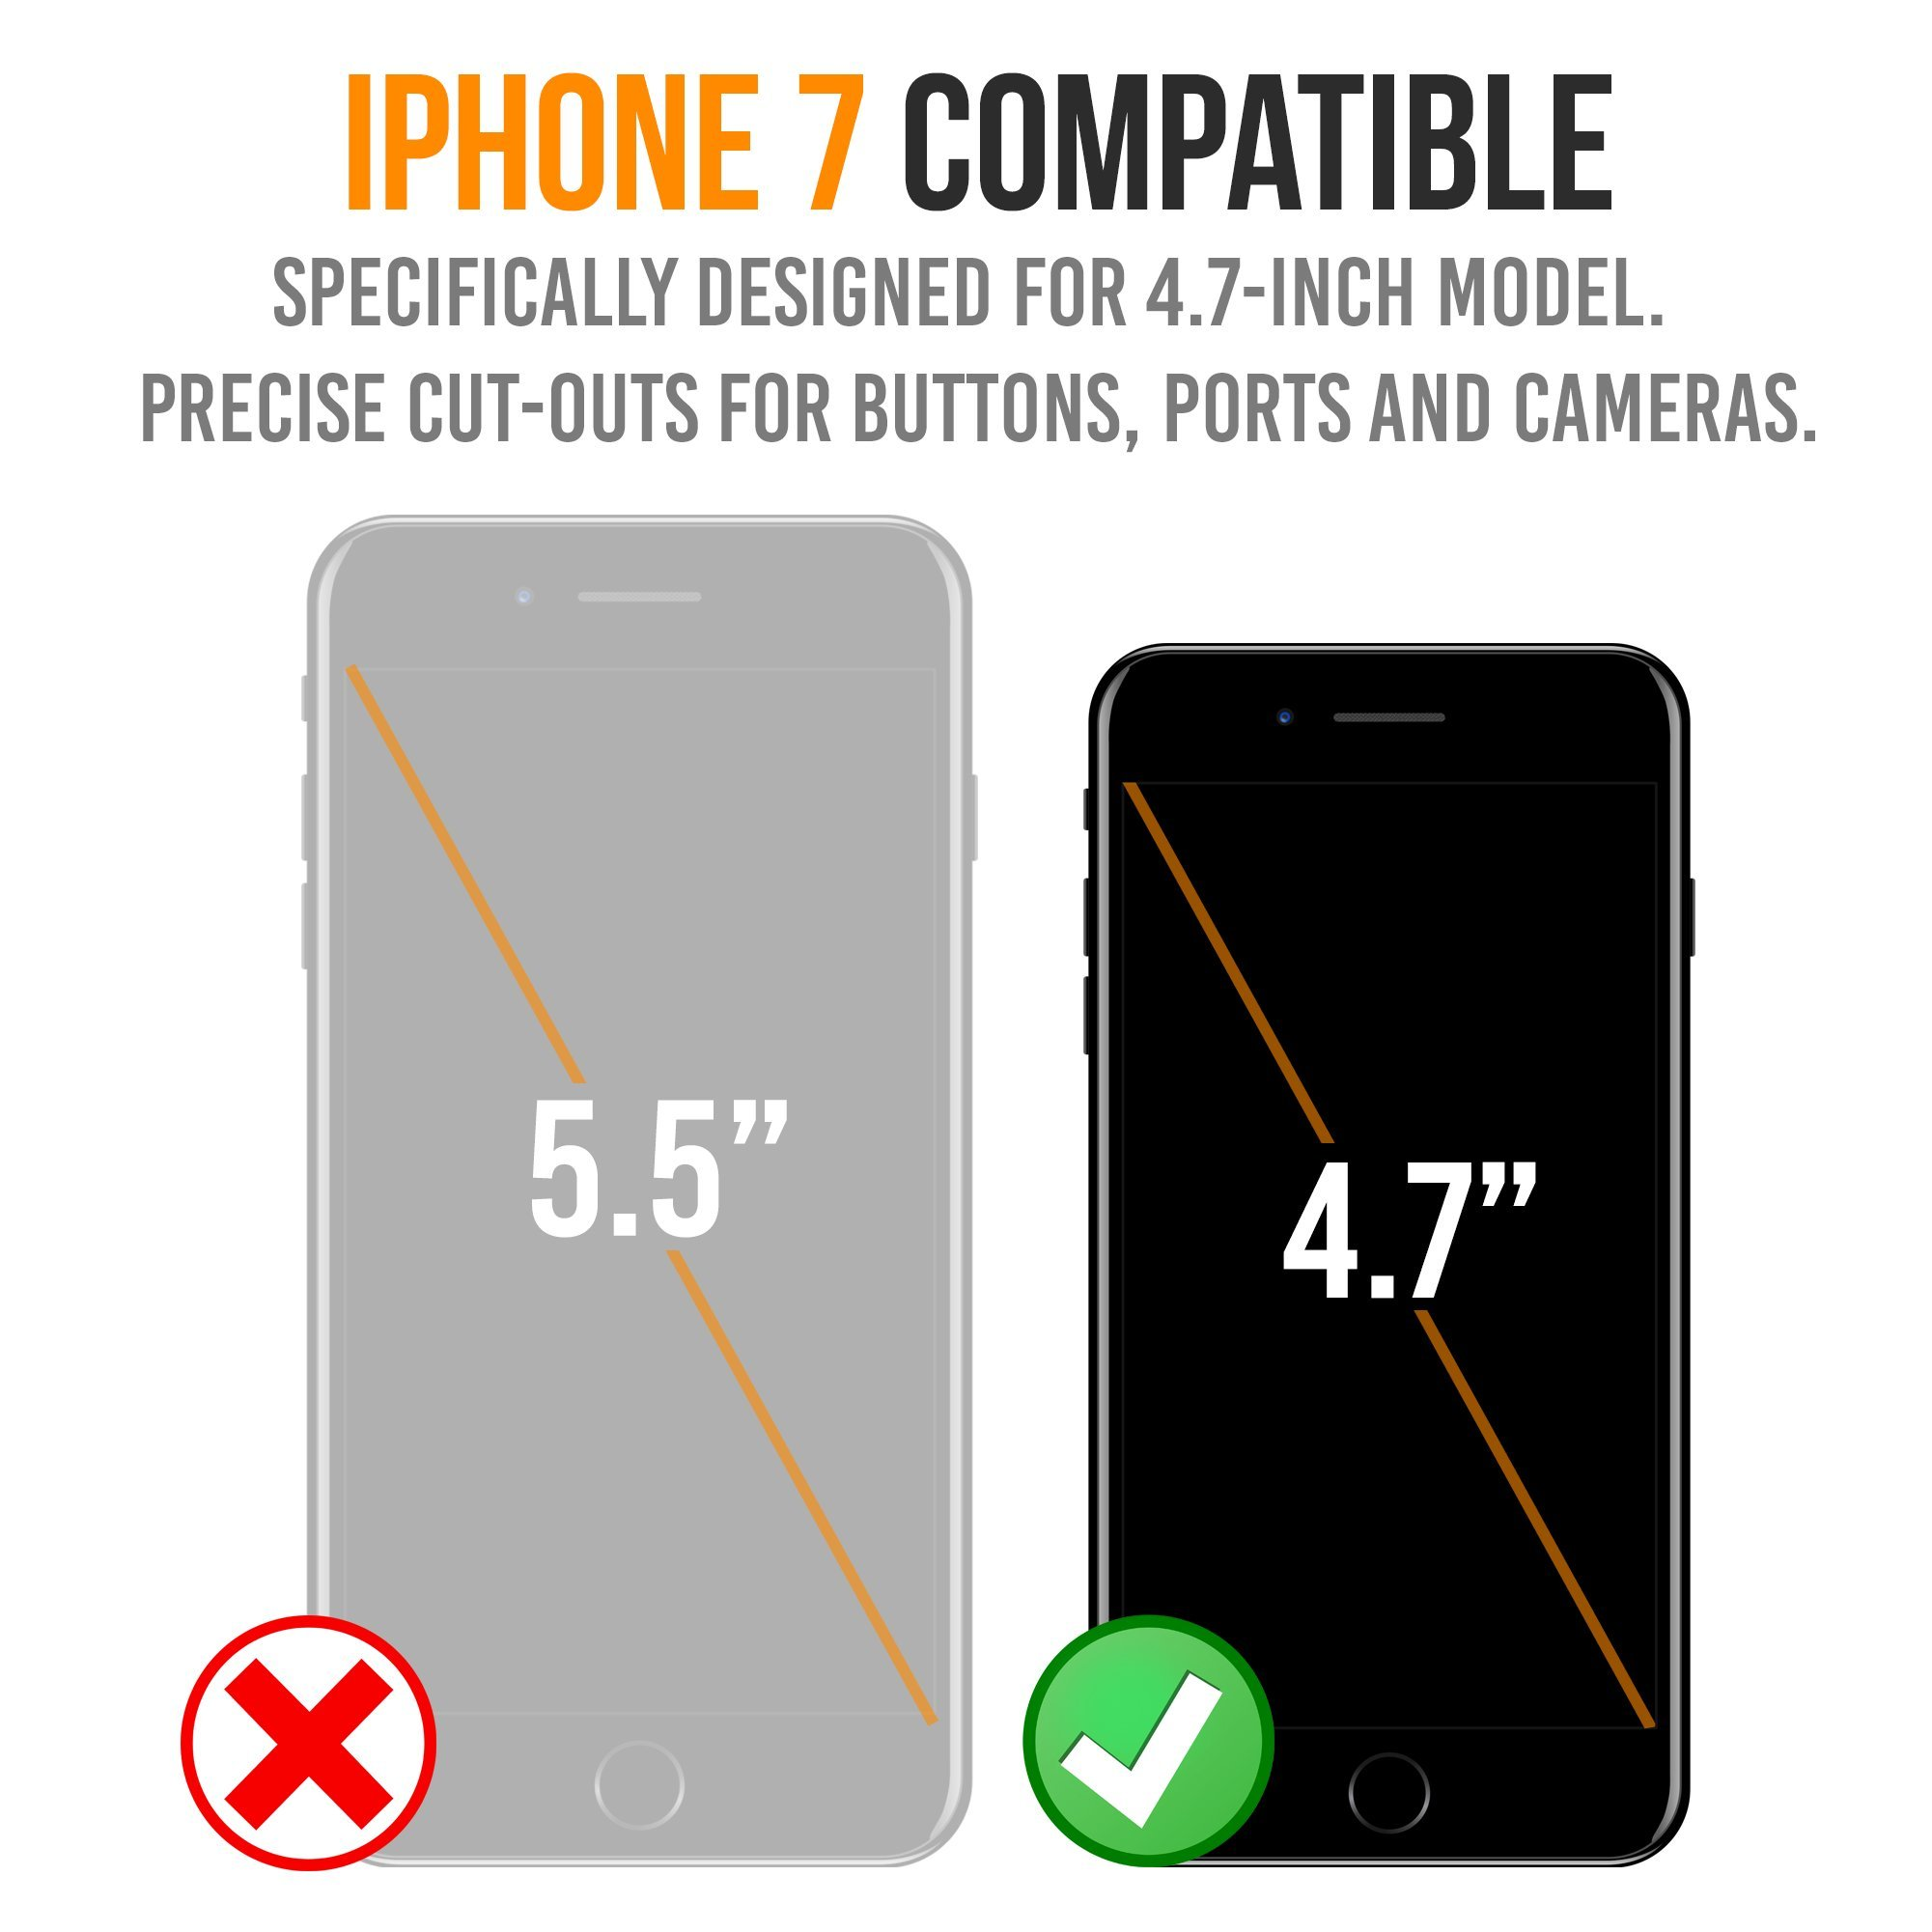 iPhone 7 Battery Case, Alpatronix BX180 4.7-inch 3200mAh Ultra Slim External Rechargeable Extended Protective Portable Charging Case & Charger Cover for iPhone7 [Apple Certified Chip] - Matte Black by Alpatronix (Image #6)